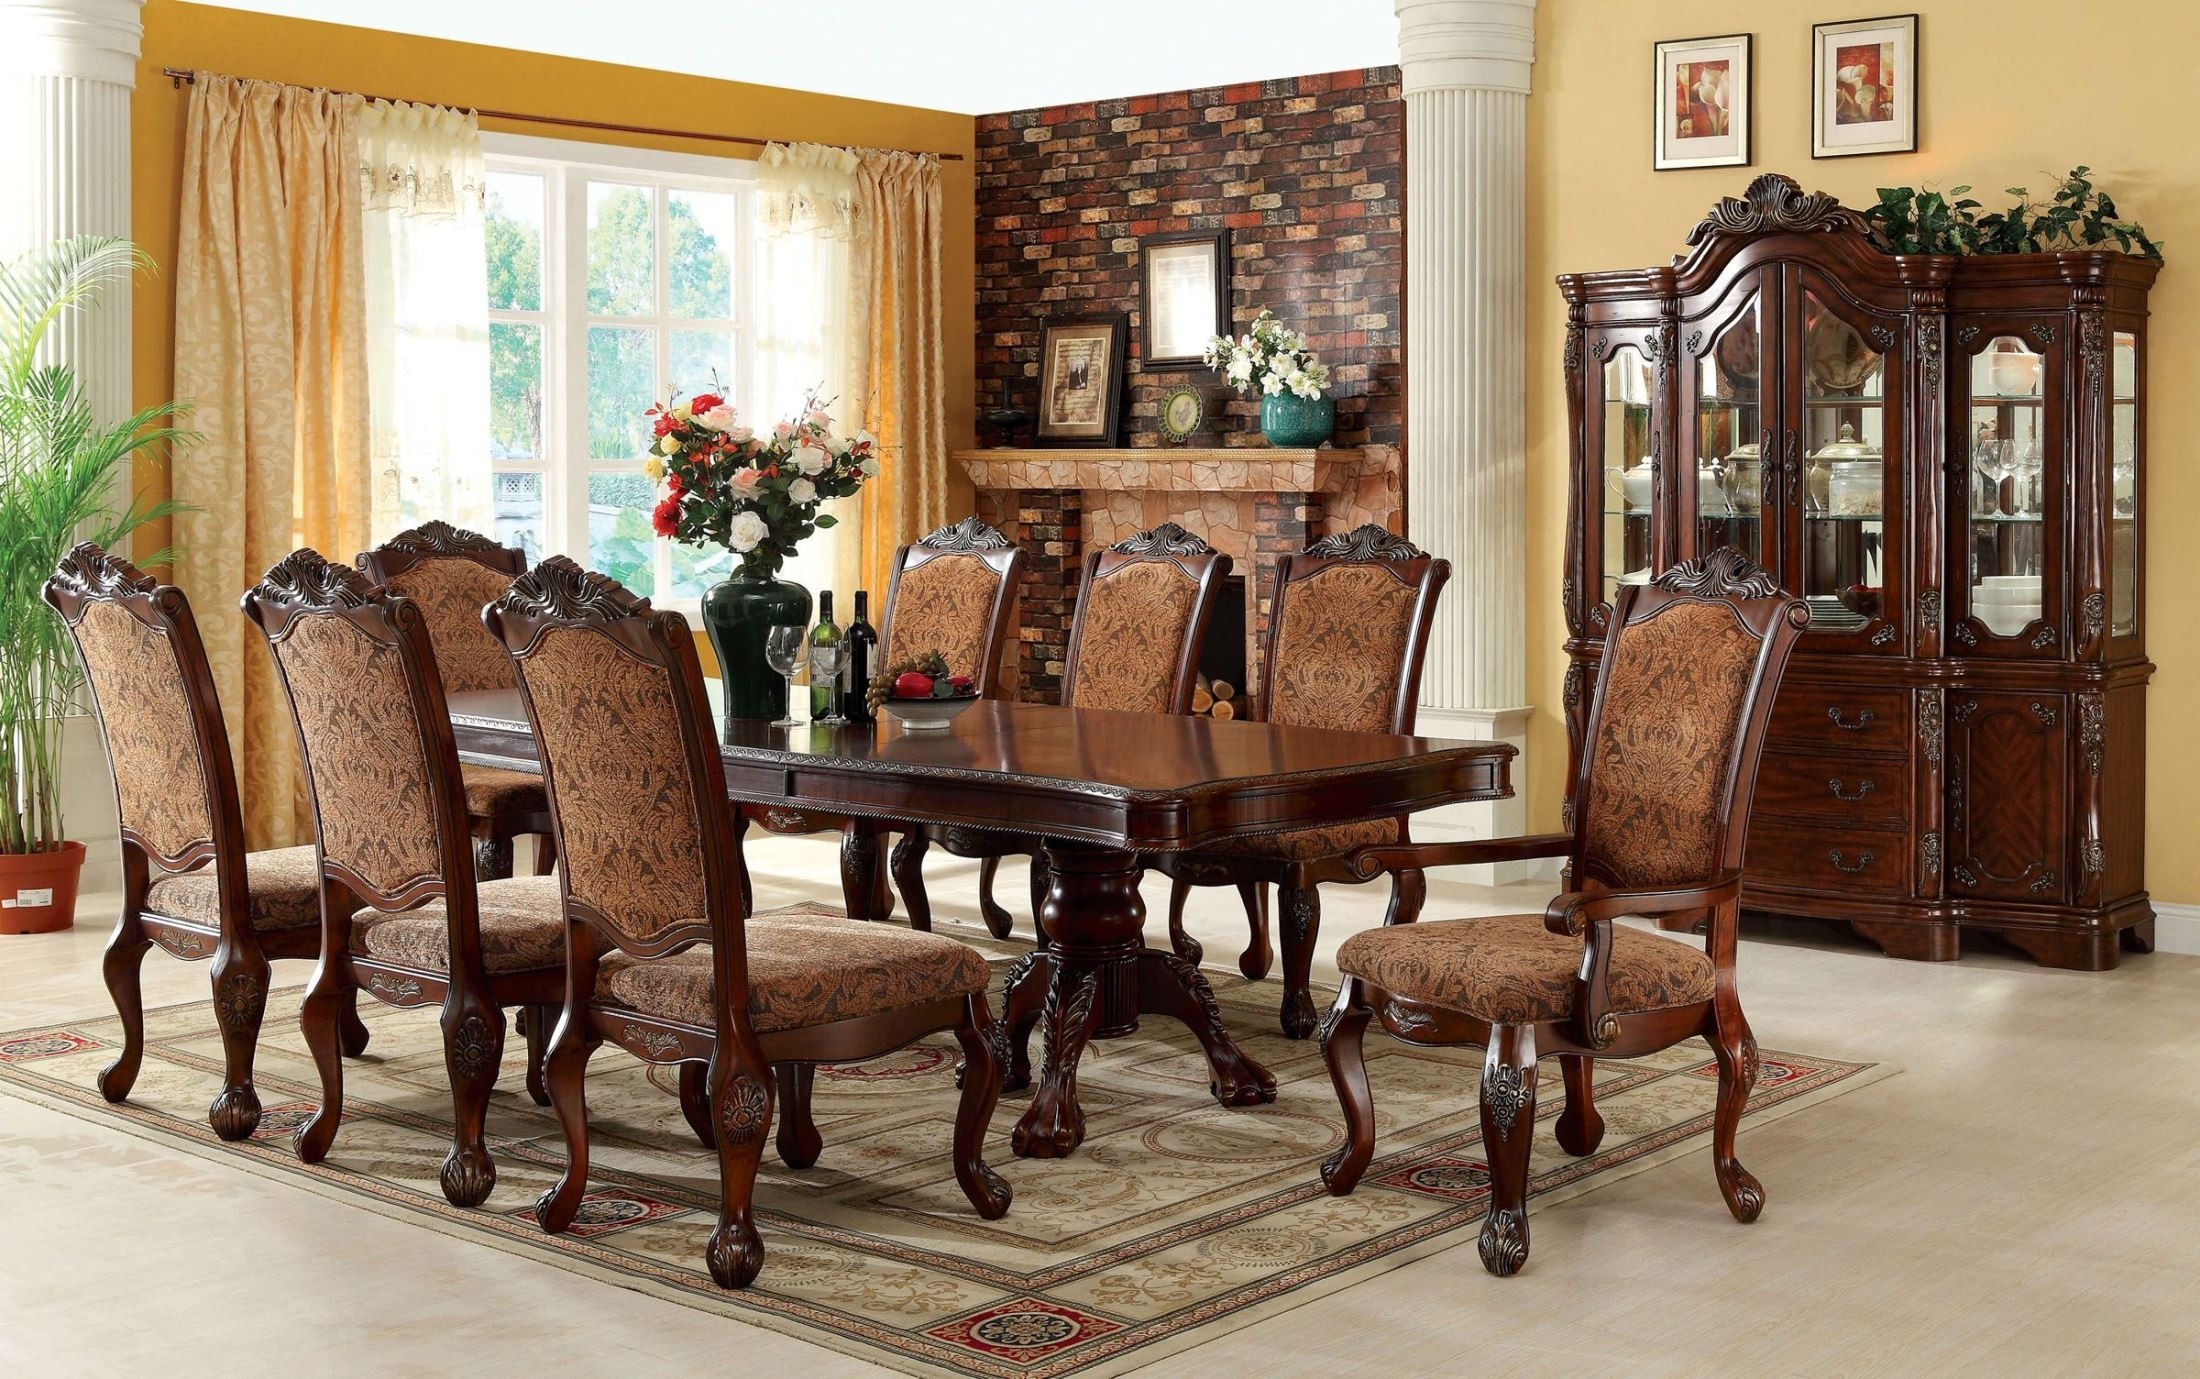 Cromwell antique cherry formal dining room set cm3103t for Rooms to go dining sets